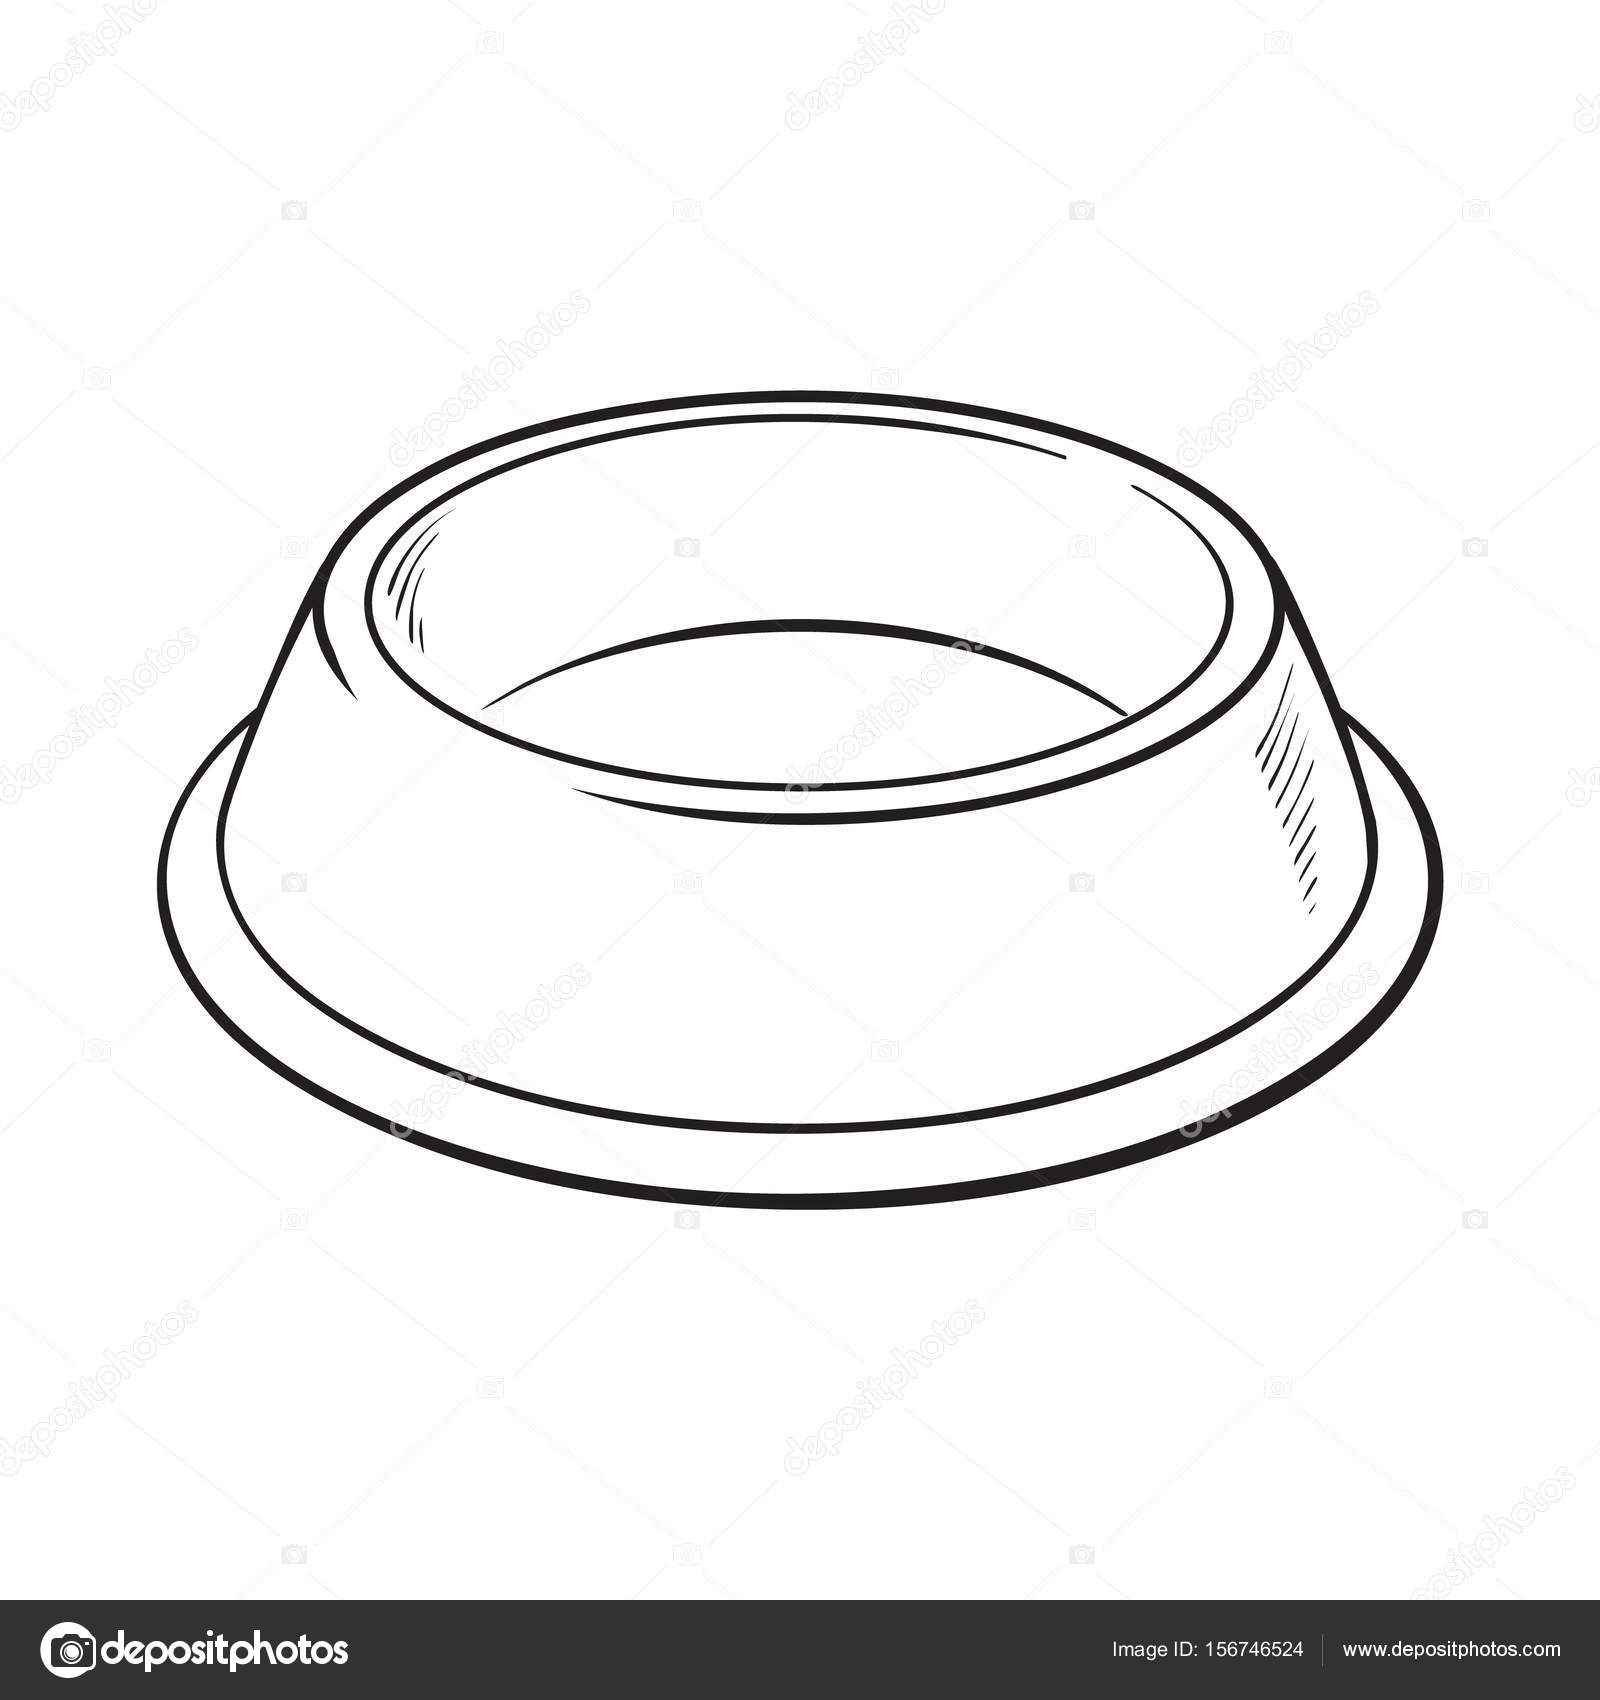 Empty Green Shiny Plastic Bowl For Pet Cat Dog Food U2014 Stock Vector U00a9 Sabelskaya #156746524